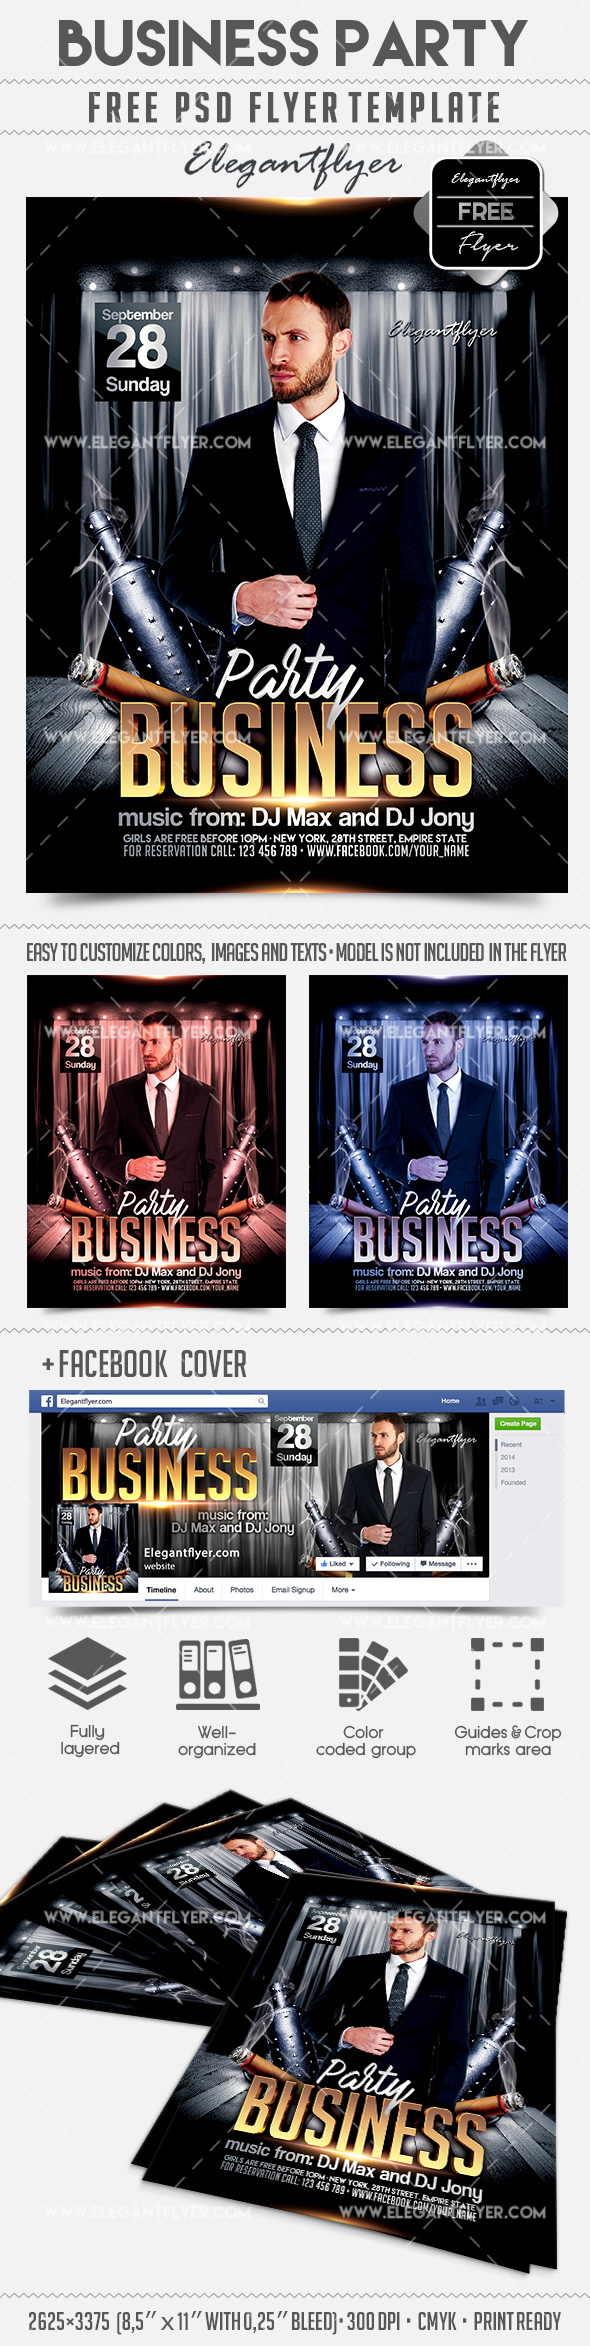 Business Party – Free Flyer PSD Template